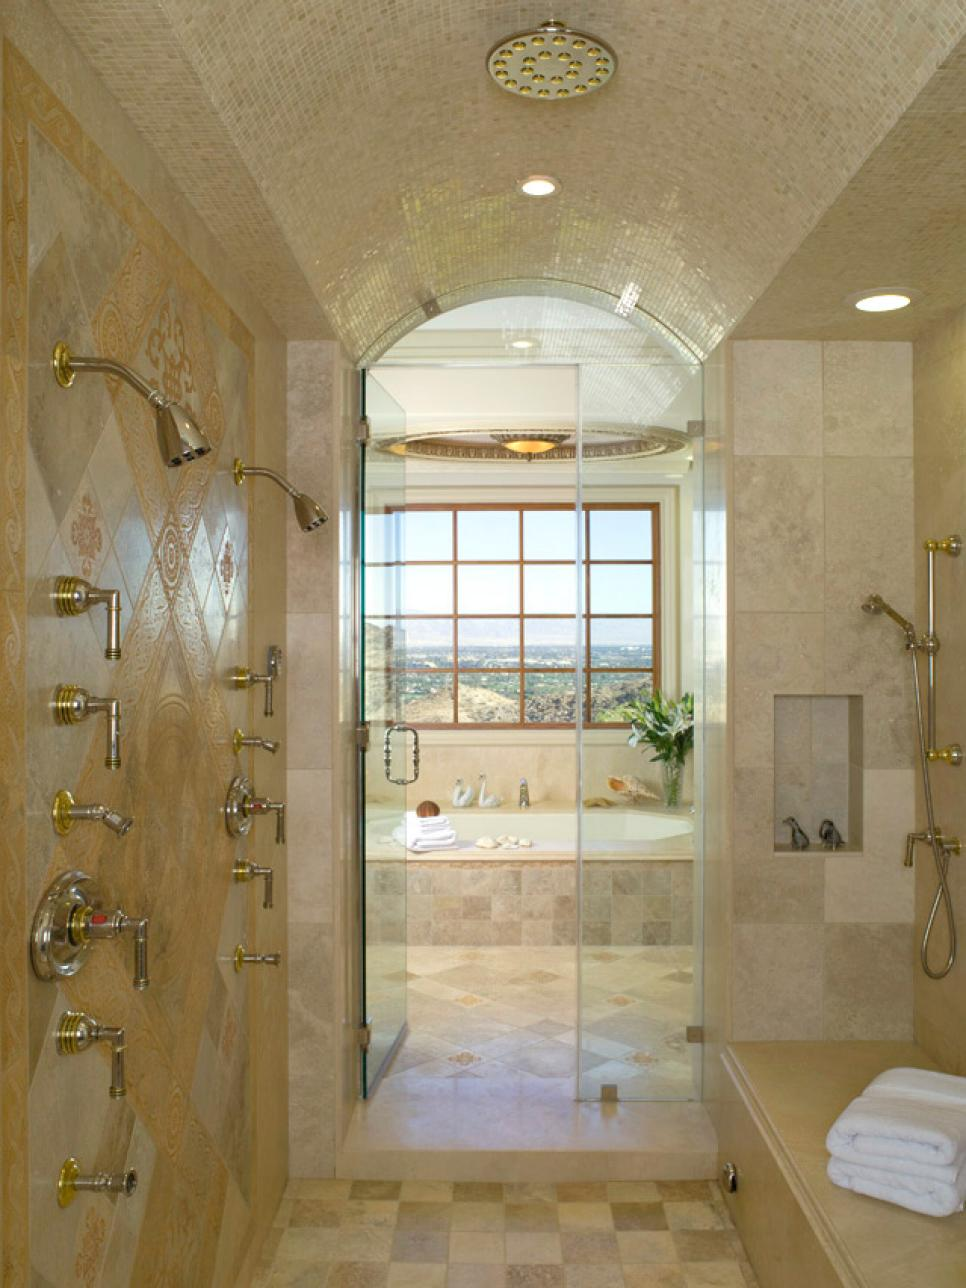 Matt muenster 39 s 8 crazy bathroom remodeling ideas diy for Images of bathroom remodel ideas